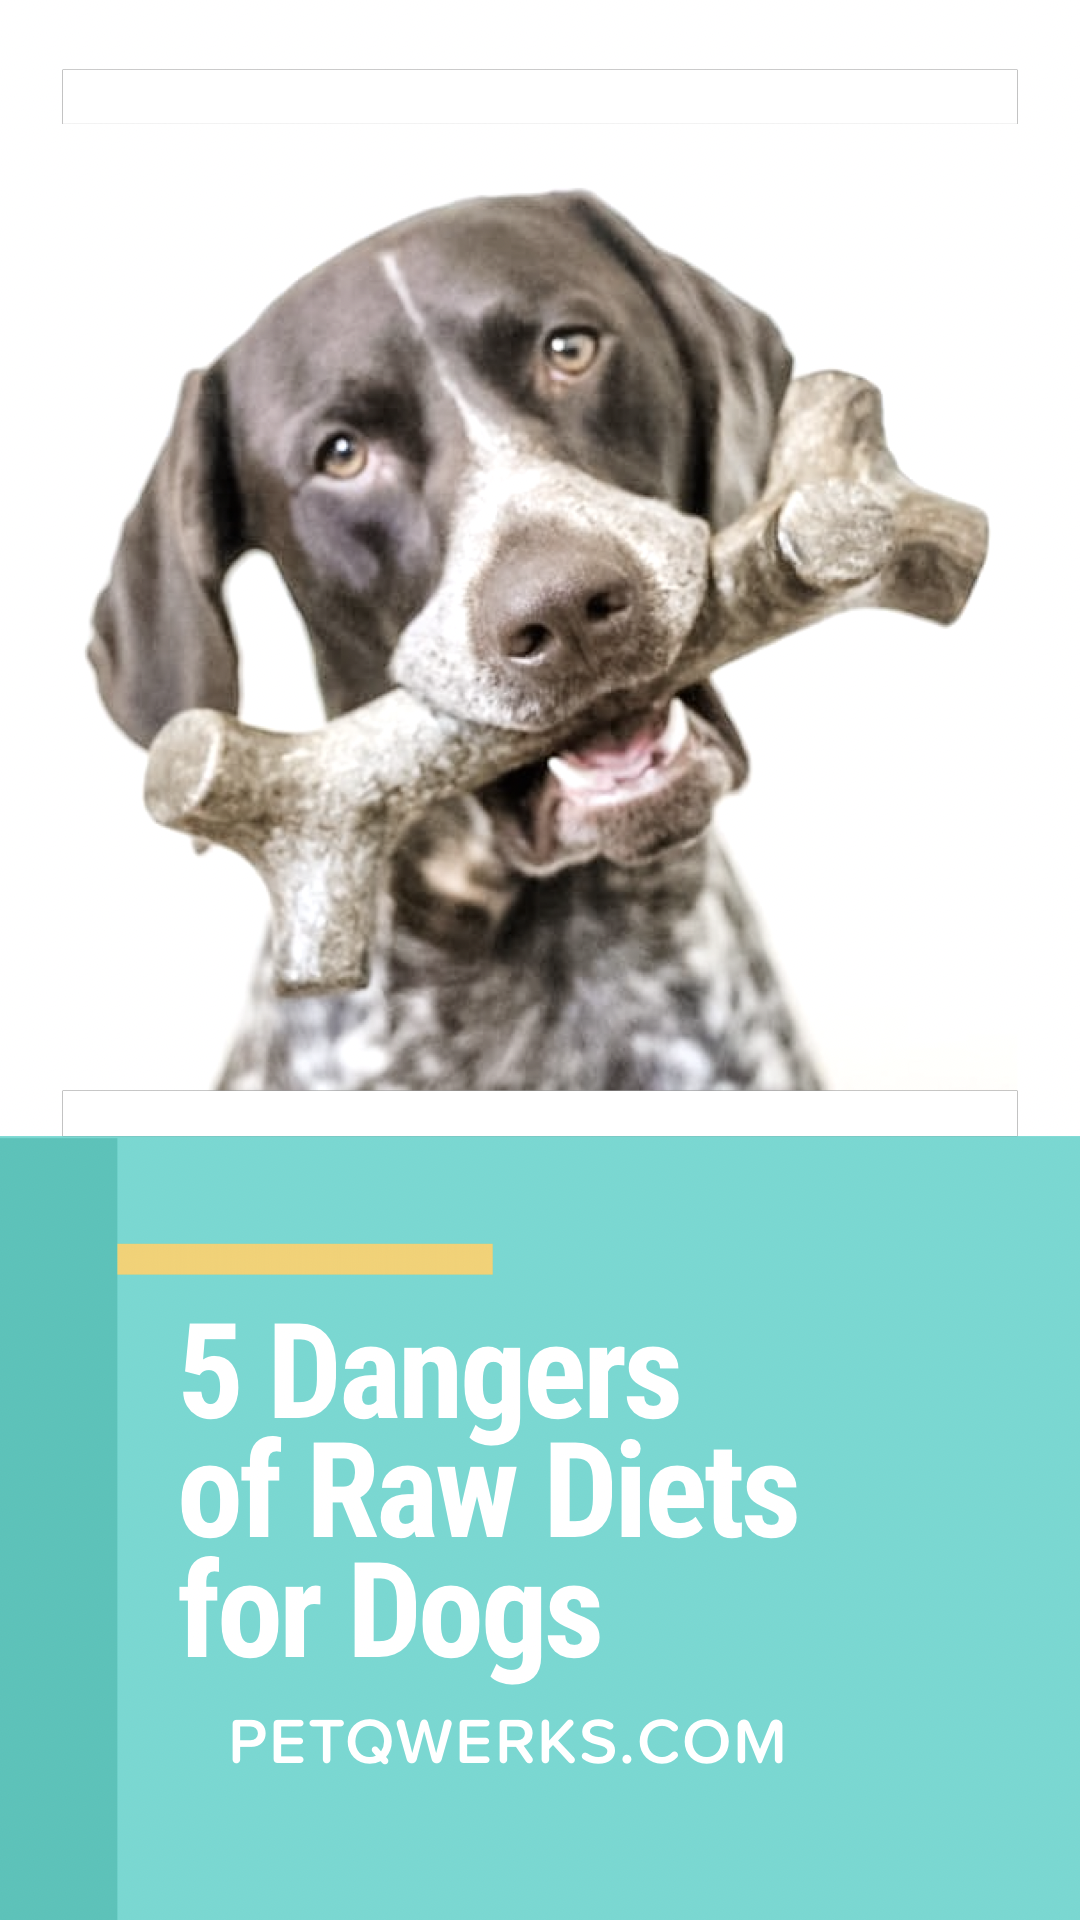 5 Dangers Of Raw Diets For Dogs Pet Qwerks Toys Raw Diet Dog Raw Diet Raw Dog Food Recipes